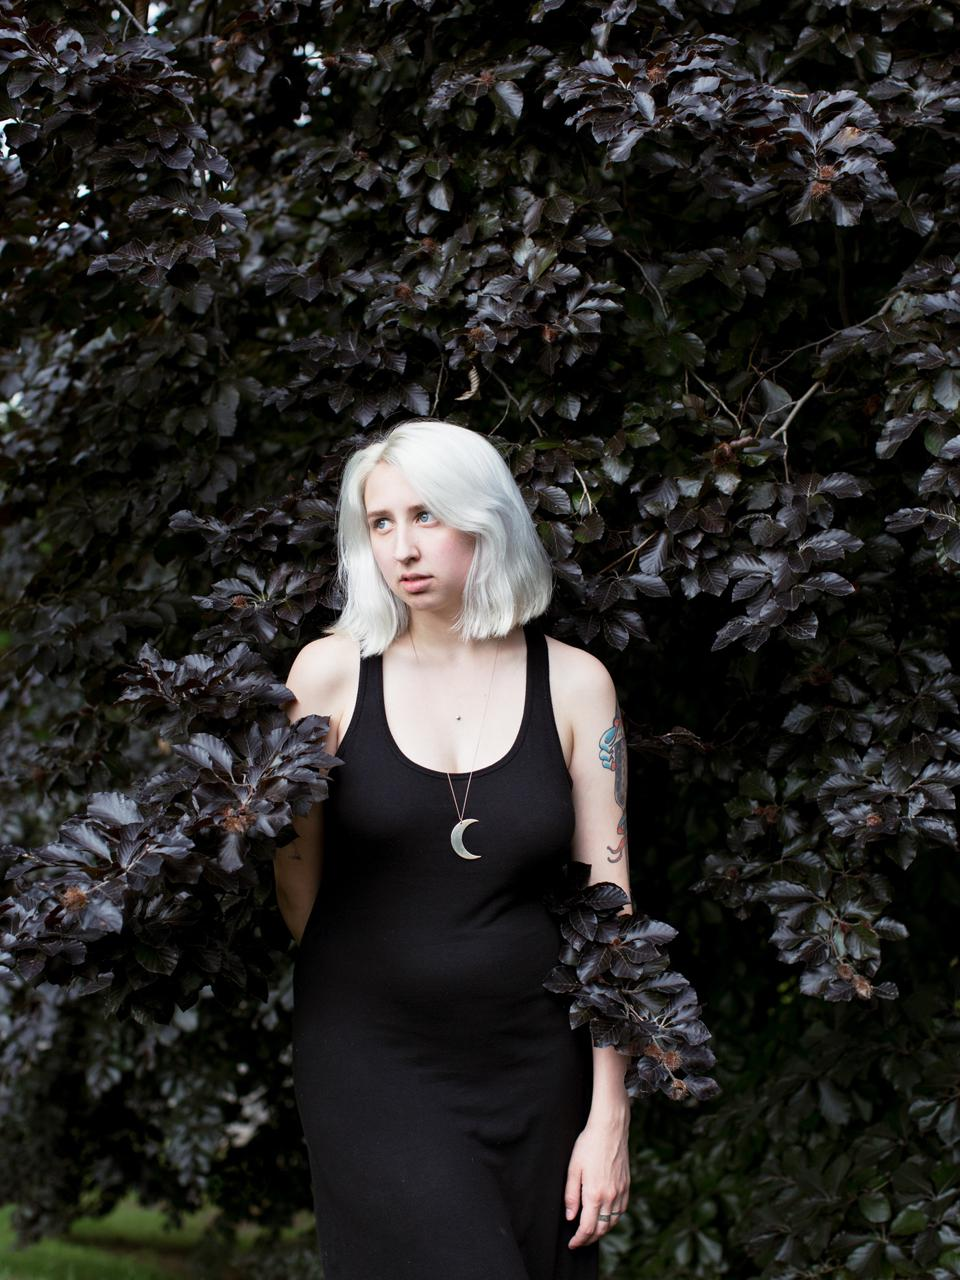 A witch standing in a bush